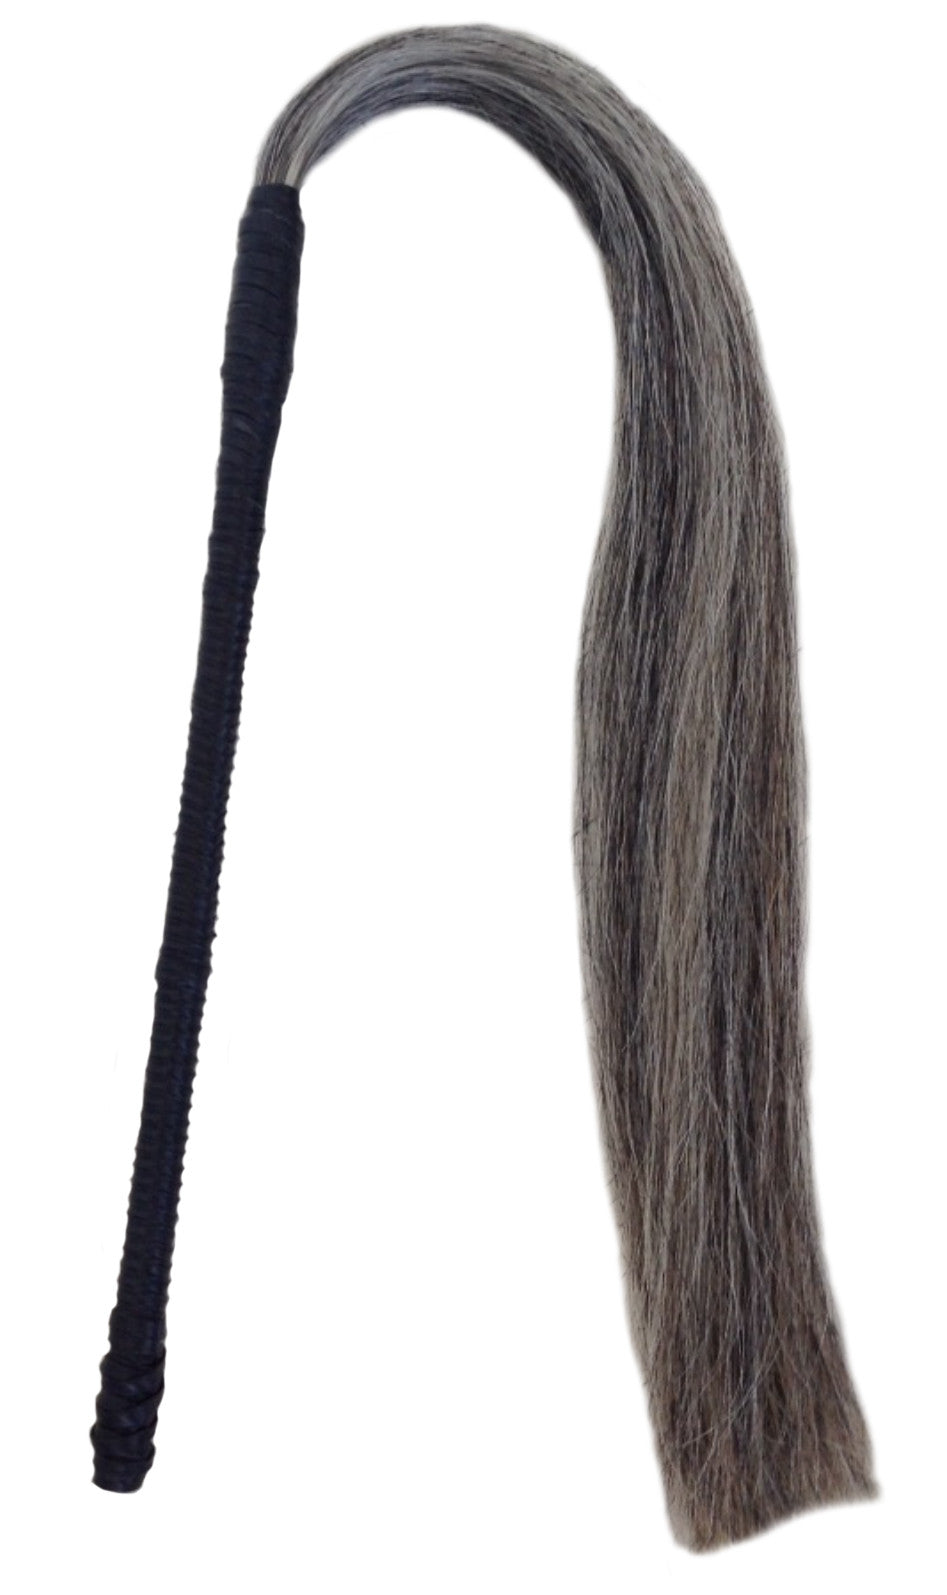 Horse Hair Whip Wendy Nichol Leather Designer Handmade in NYC New York City Dominatrix Bondage S&M Whip Leather Wrap Braided Magician Witch Wand Hair Broom Salt and Pepper Gray Grey Hair Brunette Brown Hair Red Redhead Blonde White Hair Head